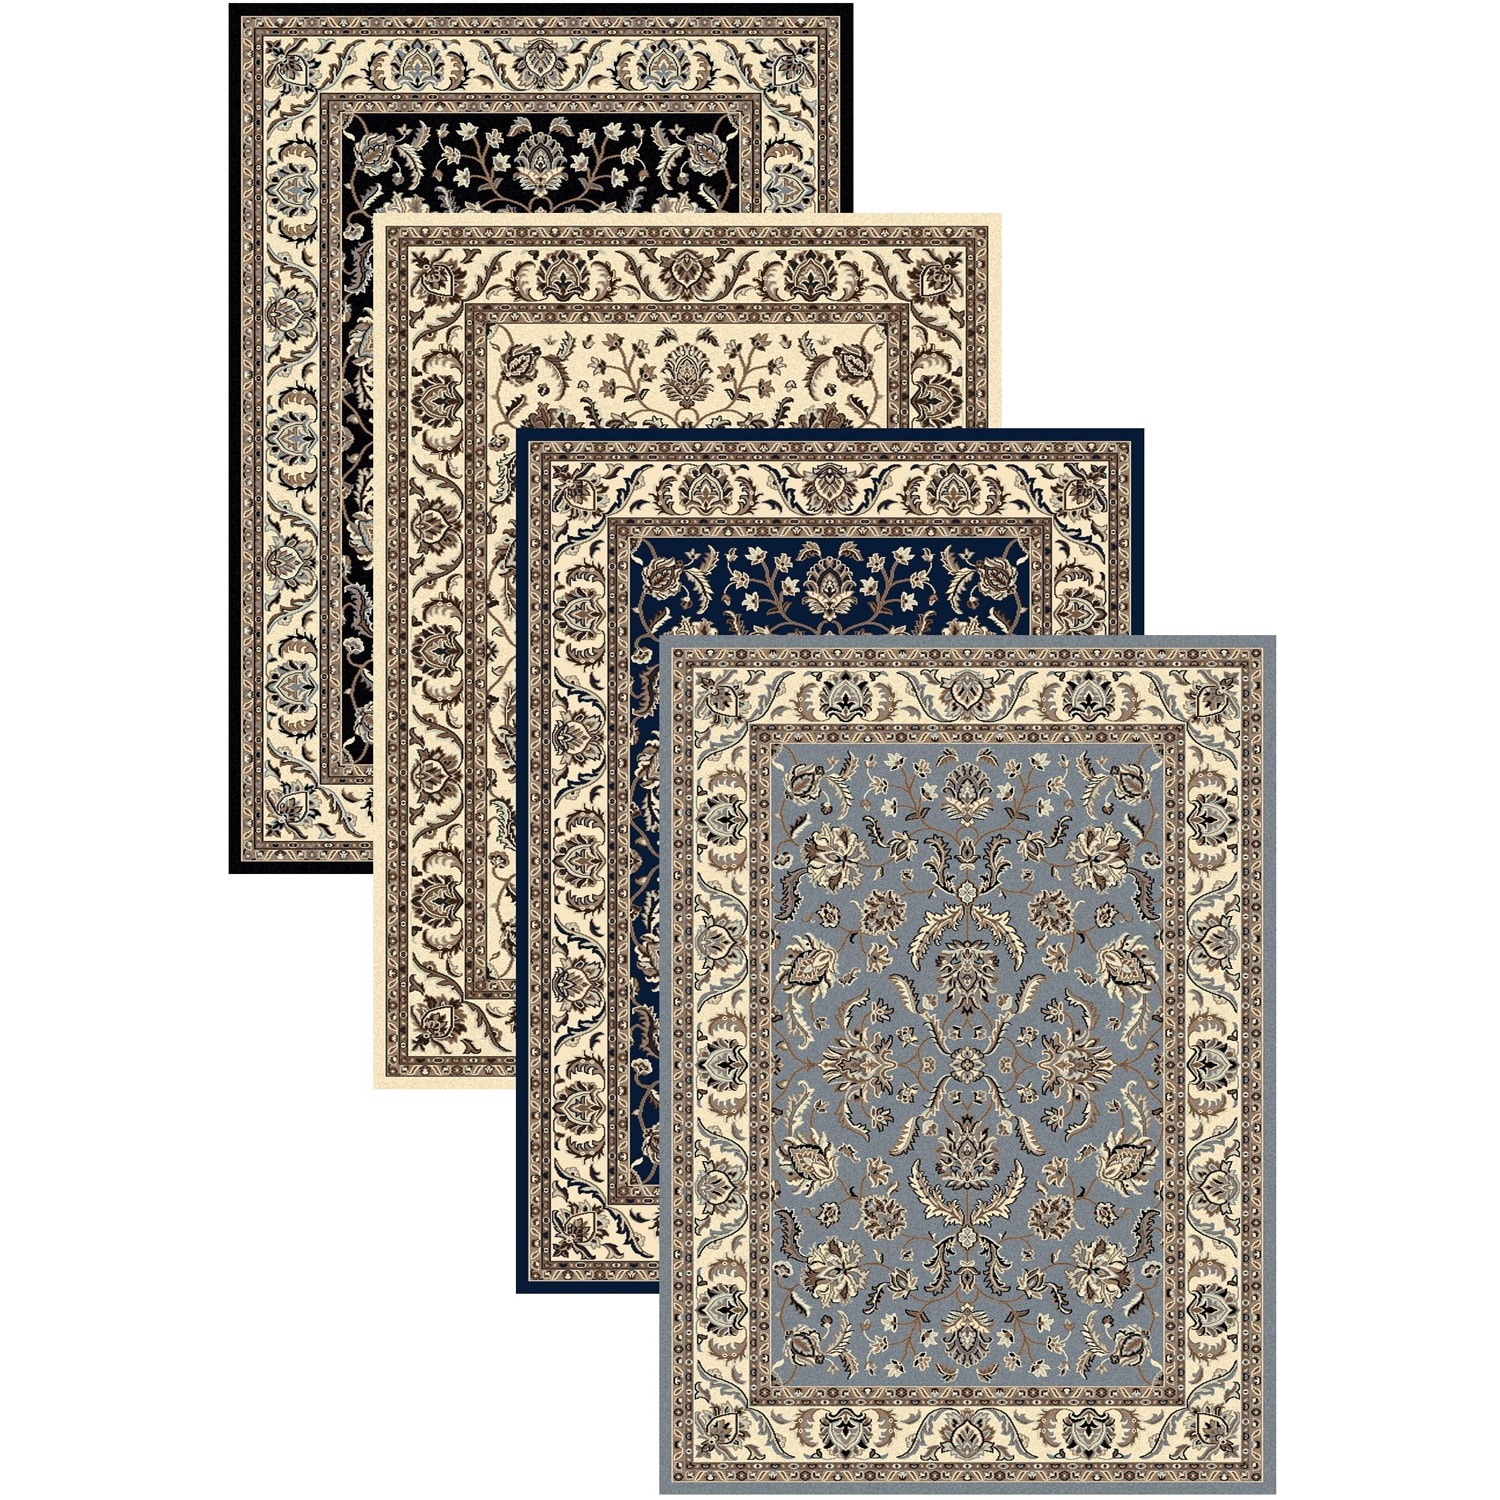 5 39 x 9 39 area rugs shopping decorate your floor space. Black Bedroom Furniture Sets. Home Design Ideas